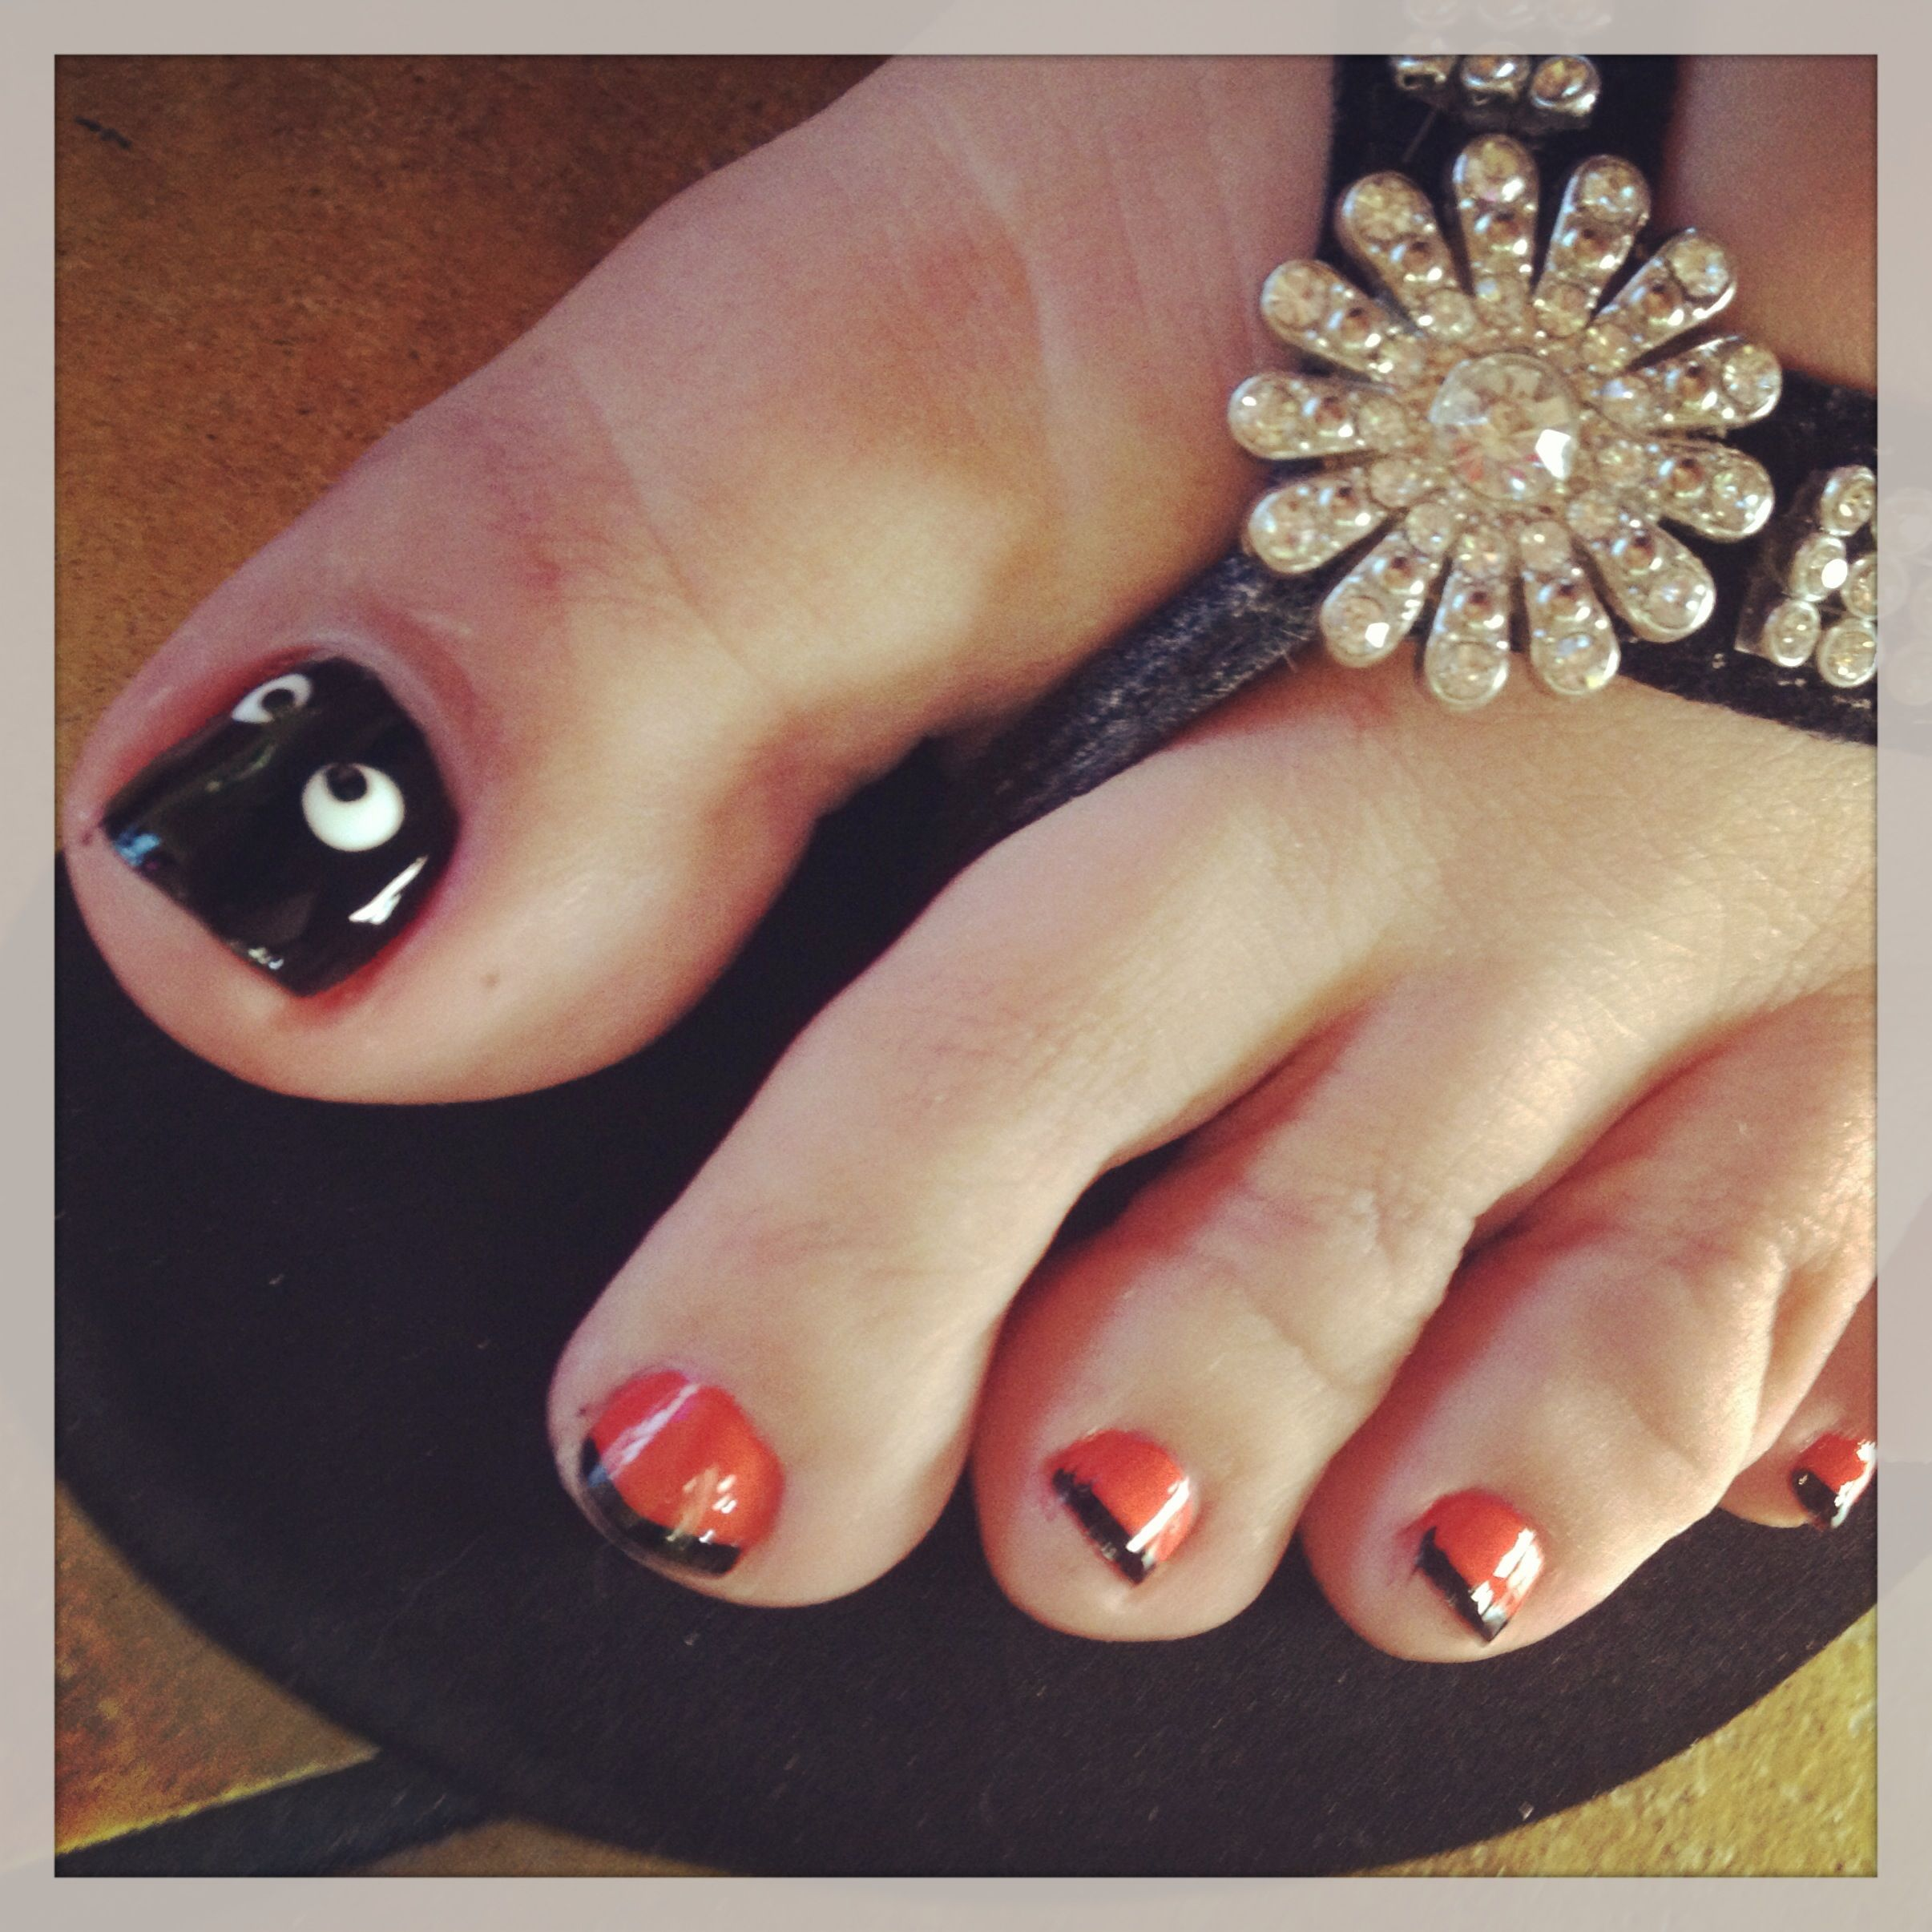 Pin By Robyn Rutledge On Nail Designs Halloween Toe Nails Toe Nails Halloween Nail Designs